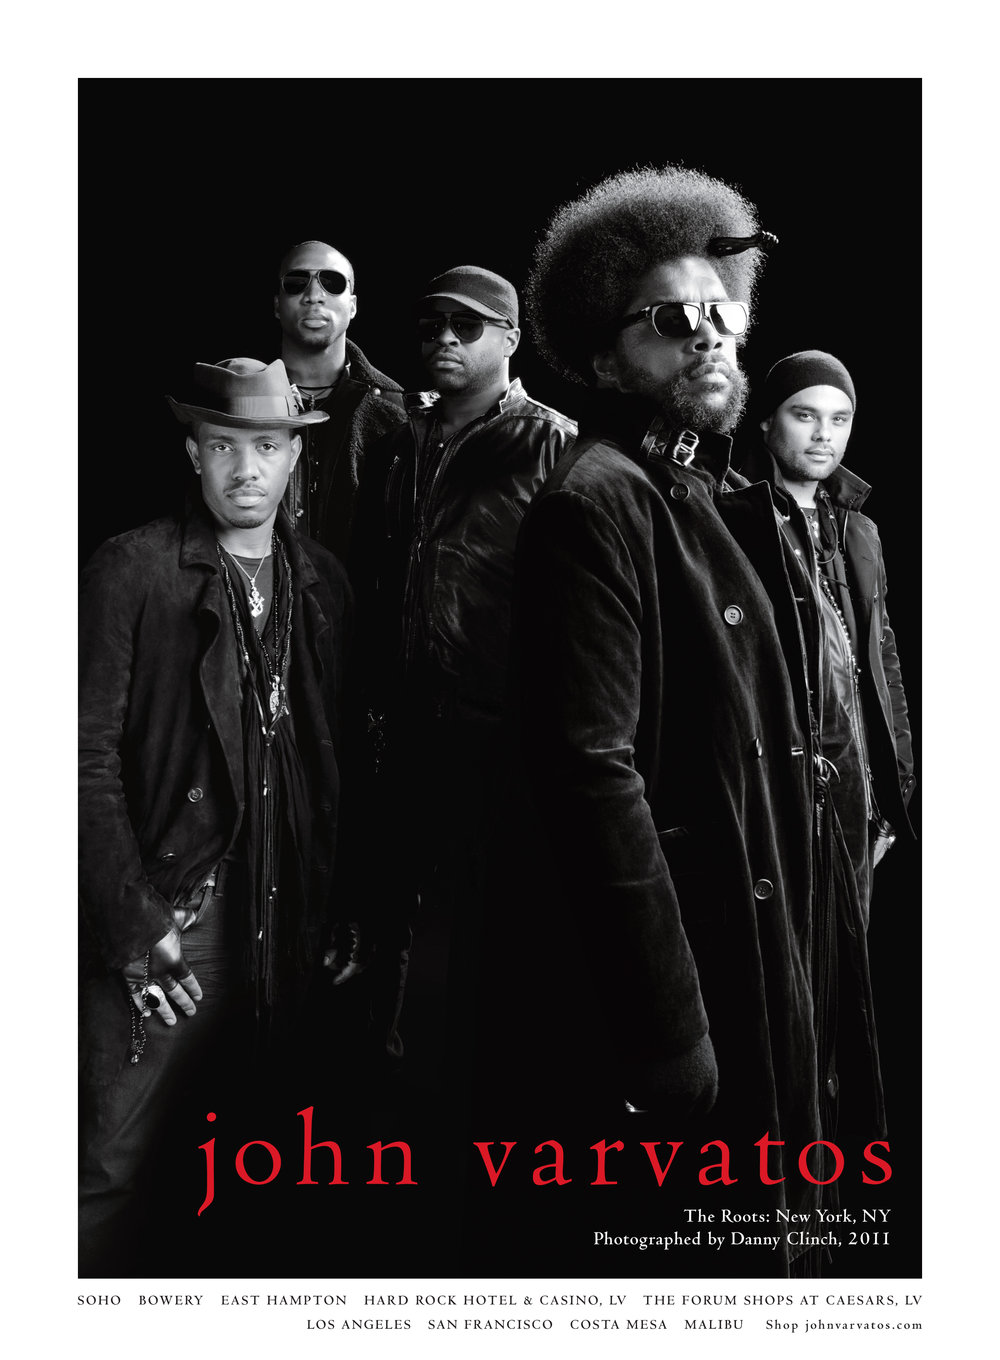 john_varvatos_roots_Questlove_Black_Thought_Black_Thought_Rebecca_Pietri_Stylist_Clinch_Photographer_Advertising .jpg